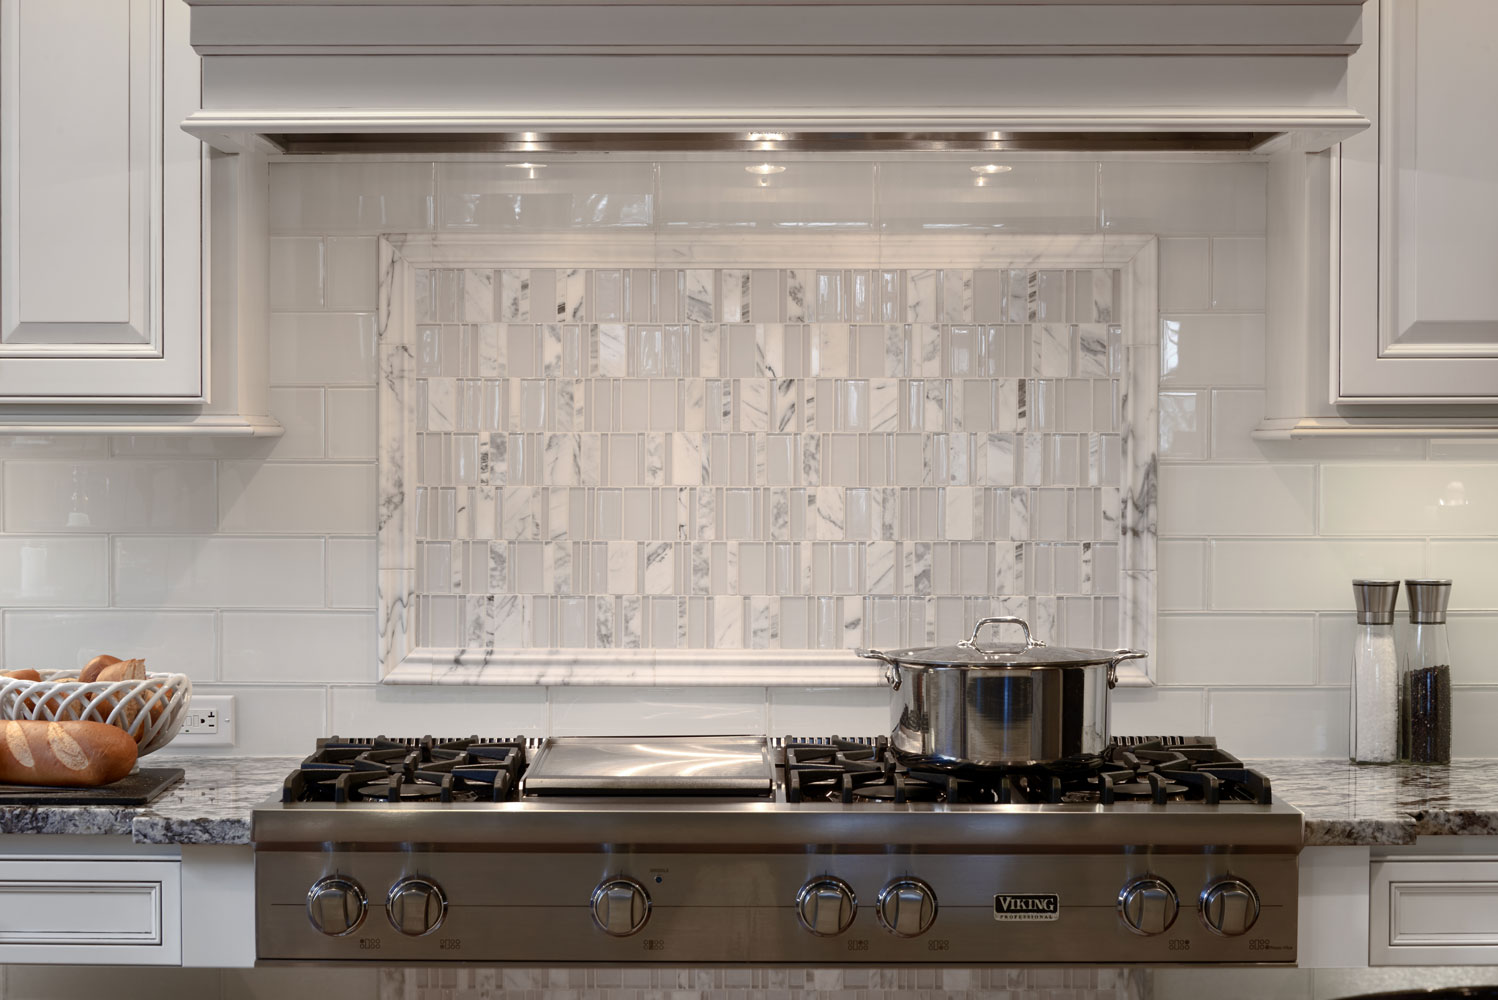 issaquah-kitchen-backsplash-design